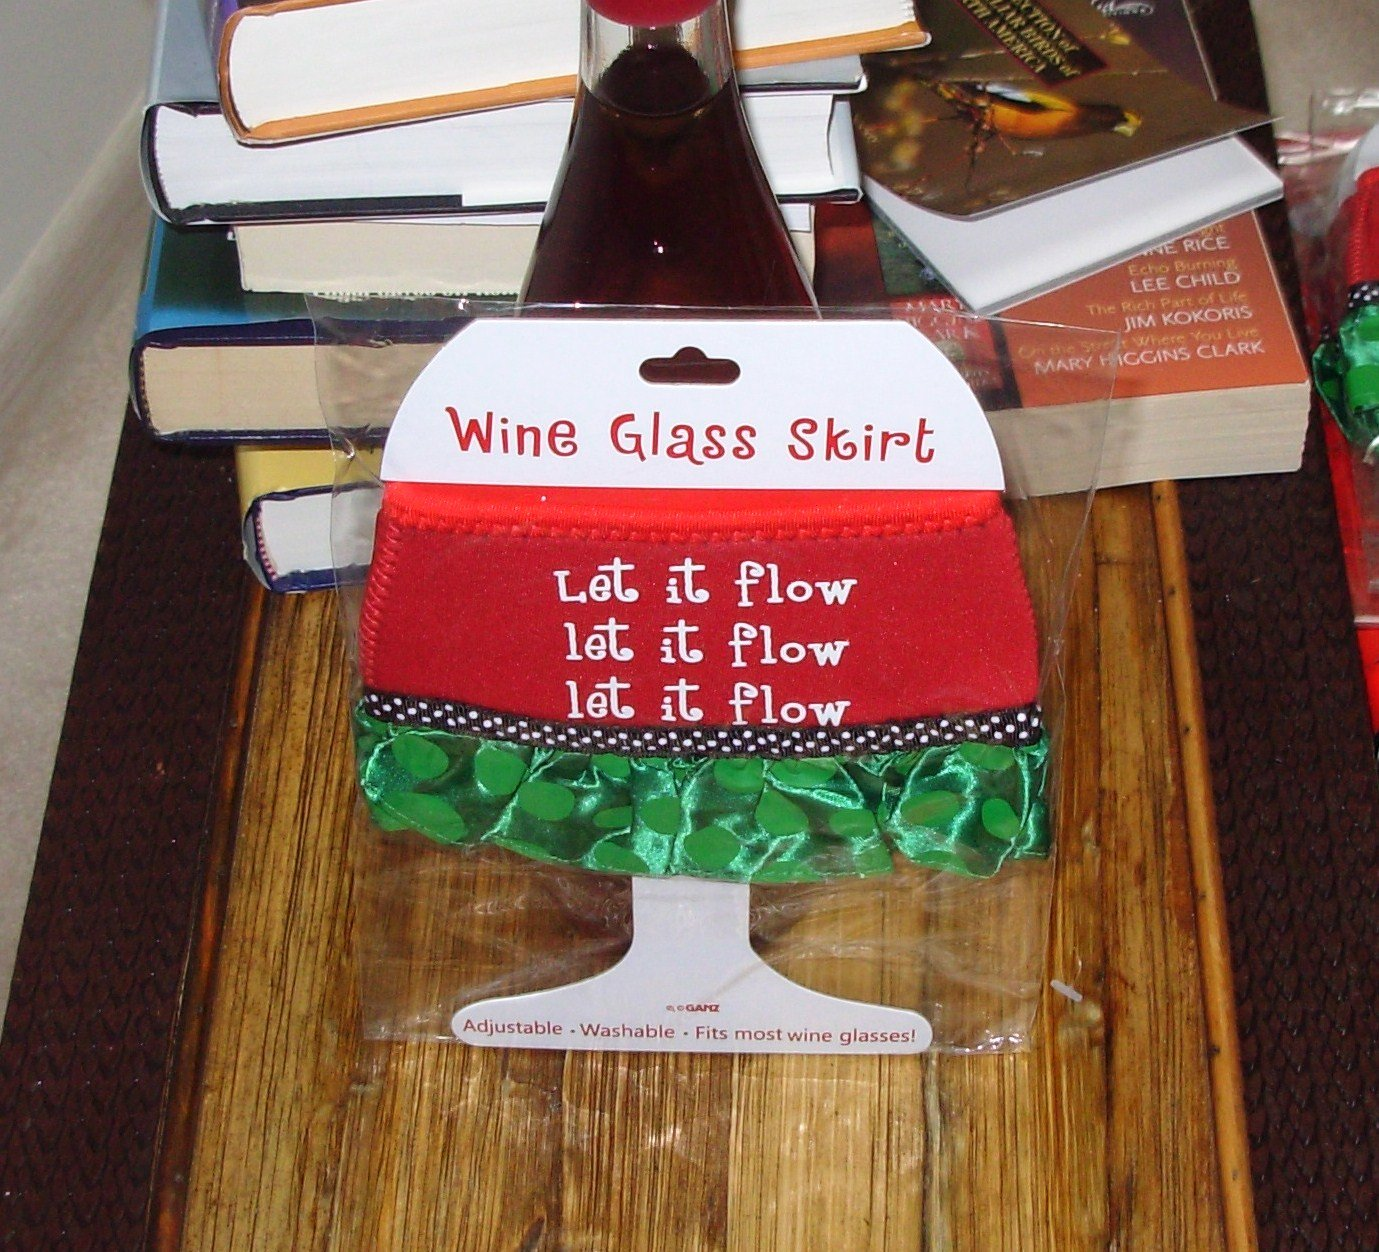 LET IT FLOW HOLIDAY WINE GLASS SKIRT CHRISTMAS HOLIDAY  ADJUSTABLE WASHABLE NEW GANZ